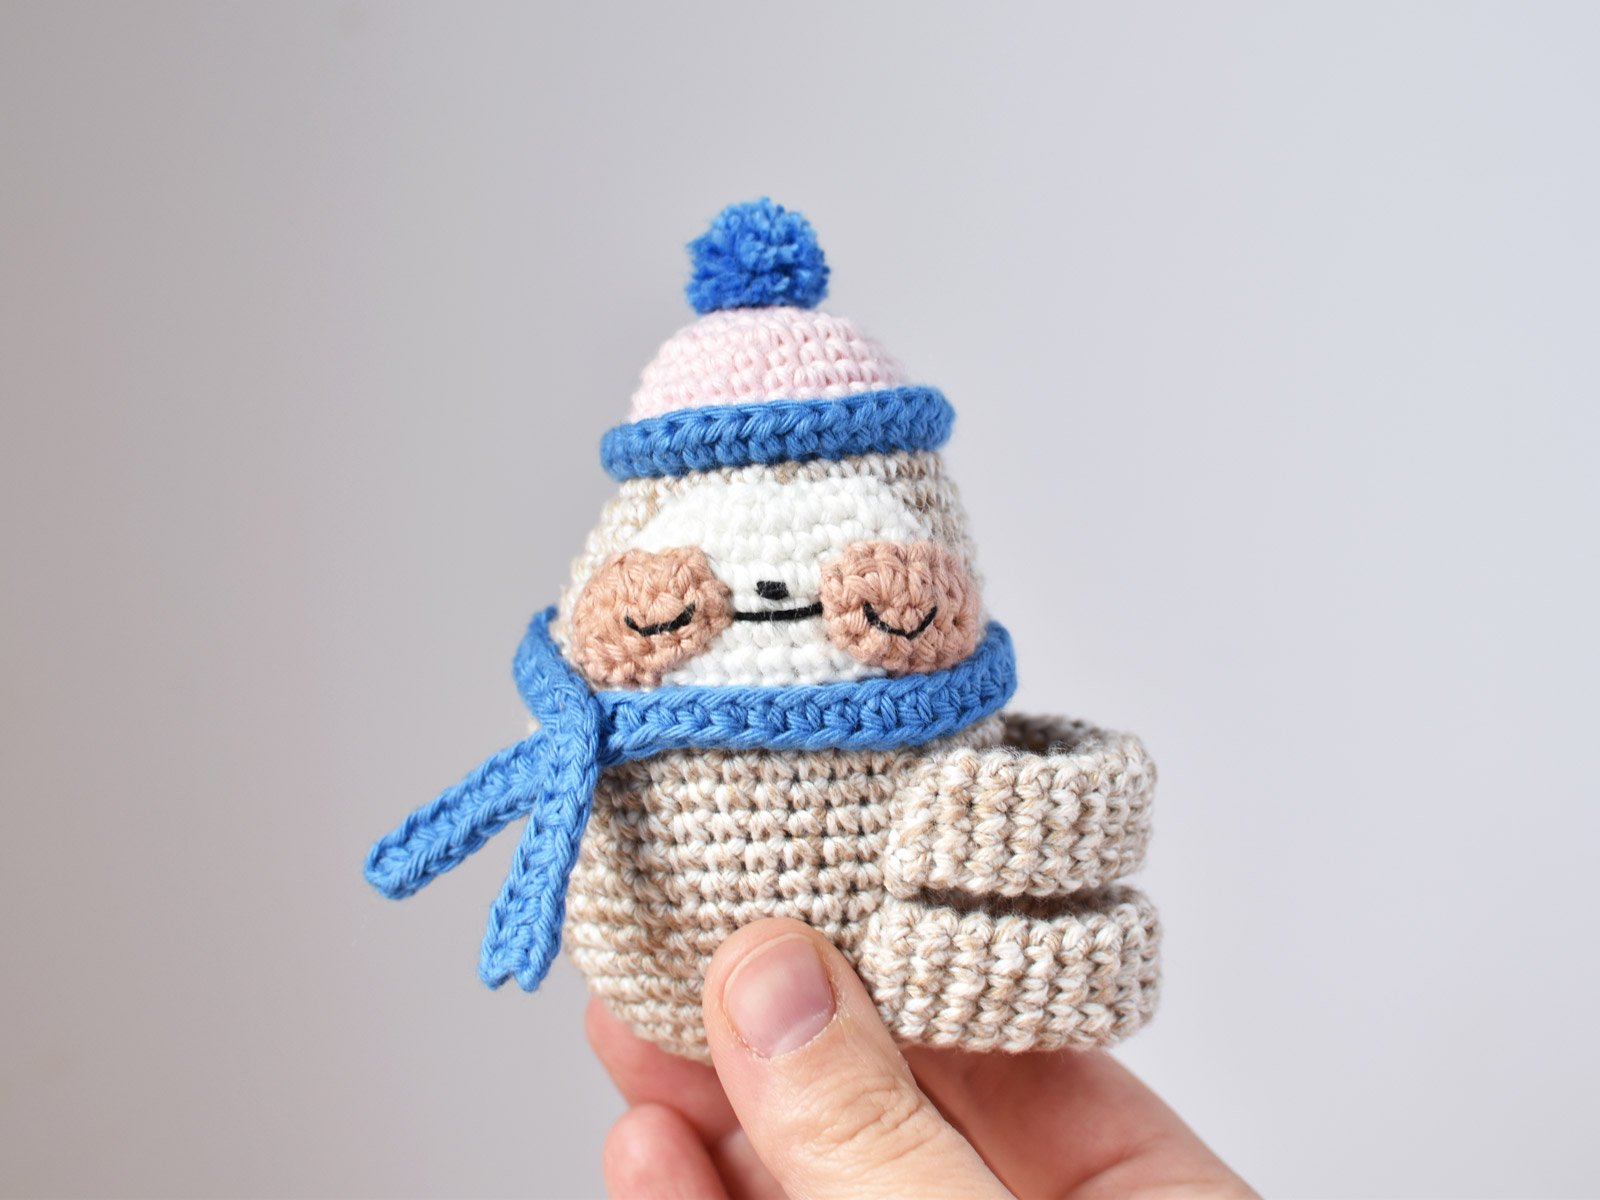 Crochet sloth with hat and scarf